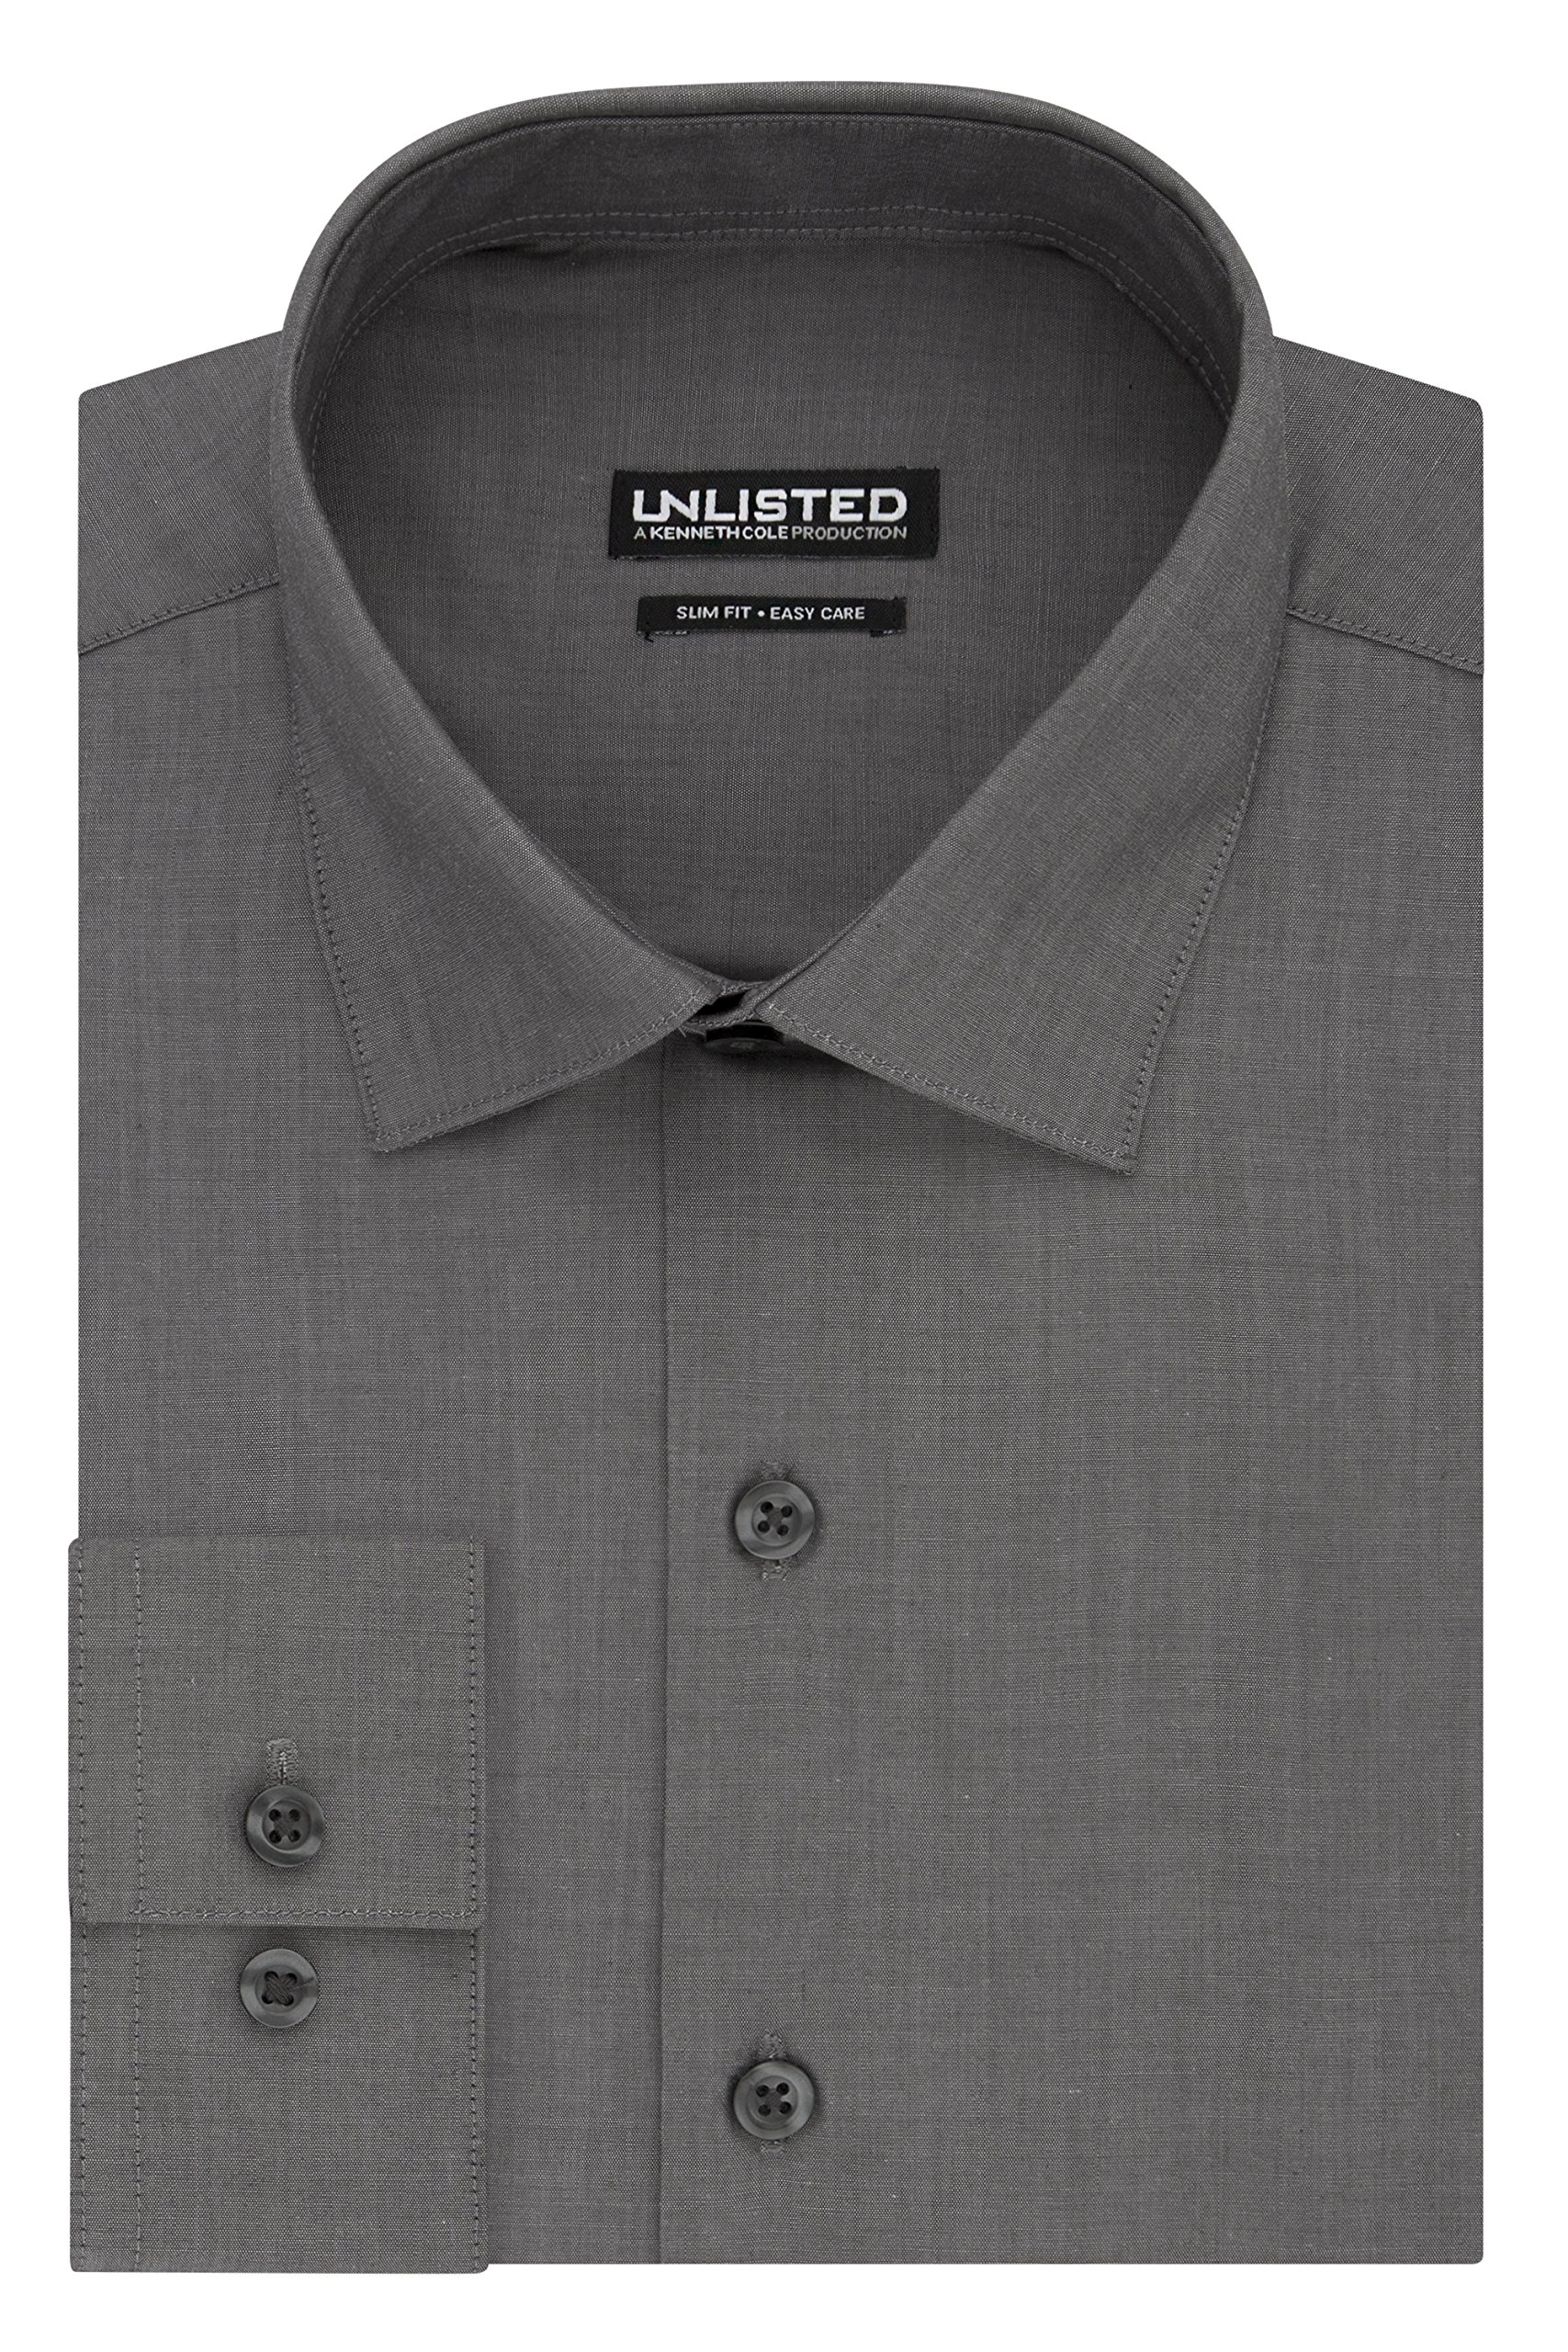 Kenneth Cole REACTION Men's Unlisted Slim Fit Solid Spread Collar Dress Shirt, Graphite, 16''-16.5'' Neck 32''-33'' Sleeve